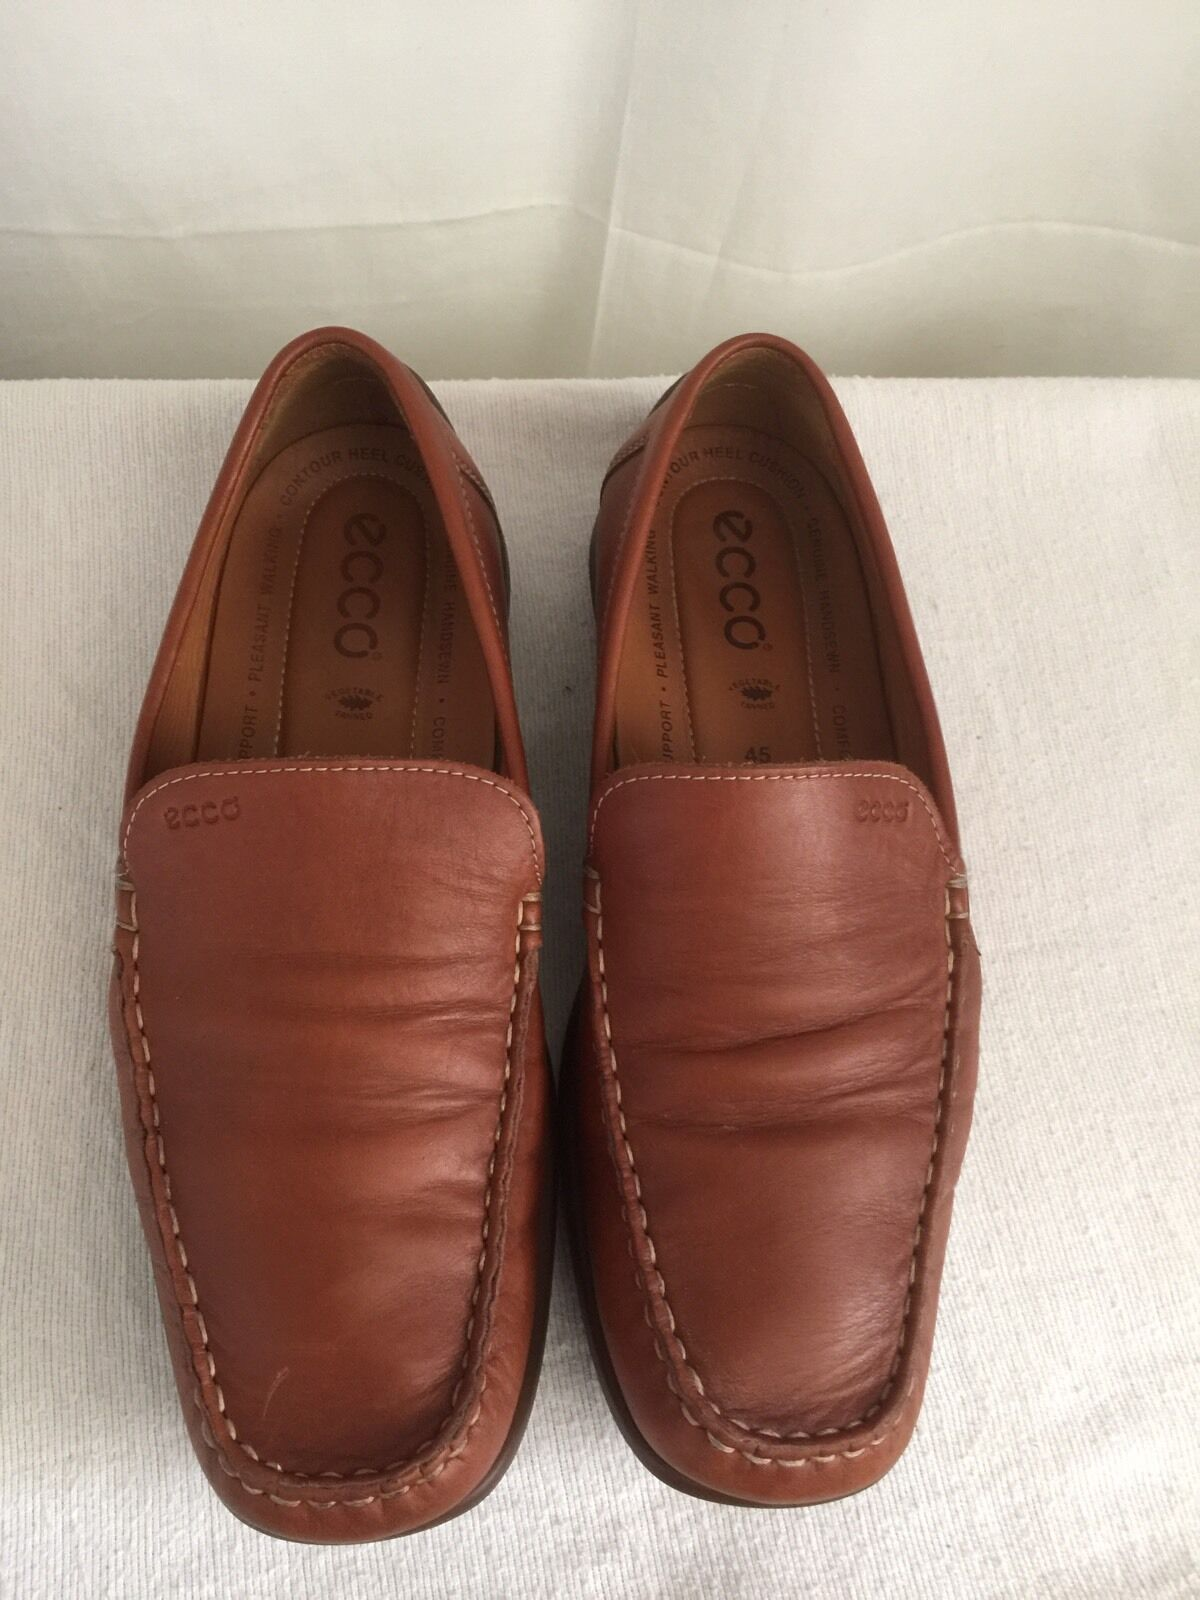 ECCO MEN'S MOCCASIN DRIVING SHOES LOAFERS Comfort  BROWN SIZE EU 45   11-11.5